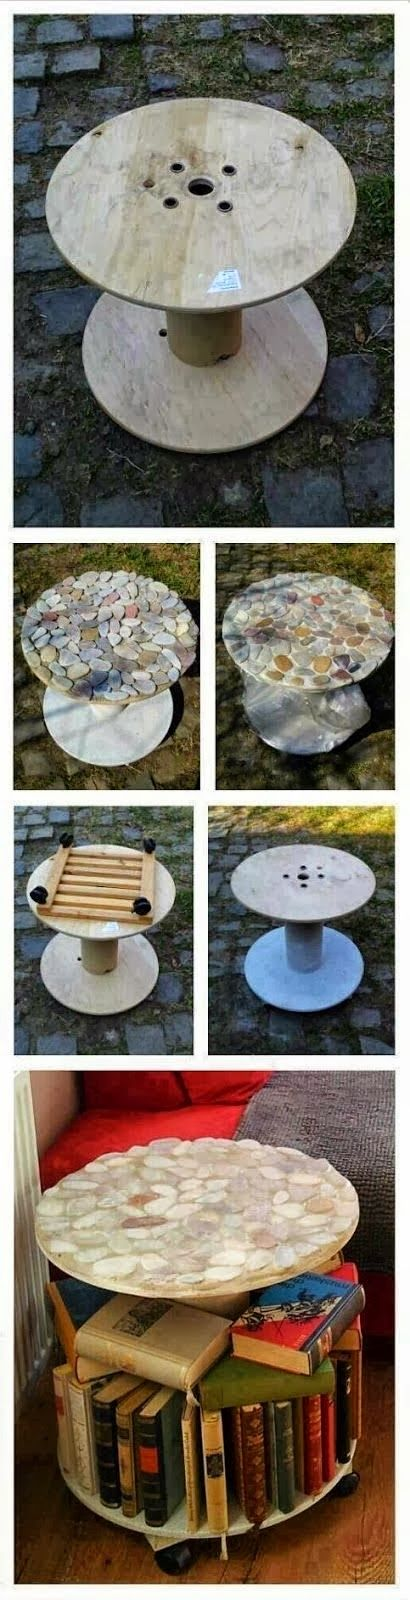 make a table by recycling spool upcycle diy diy pinterest basteln m bel und kabeltrommel. Black Bedroom Furniture Sets. Home Design Ideas